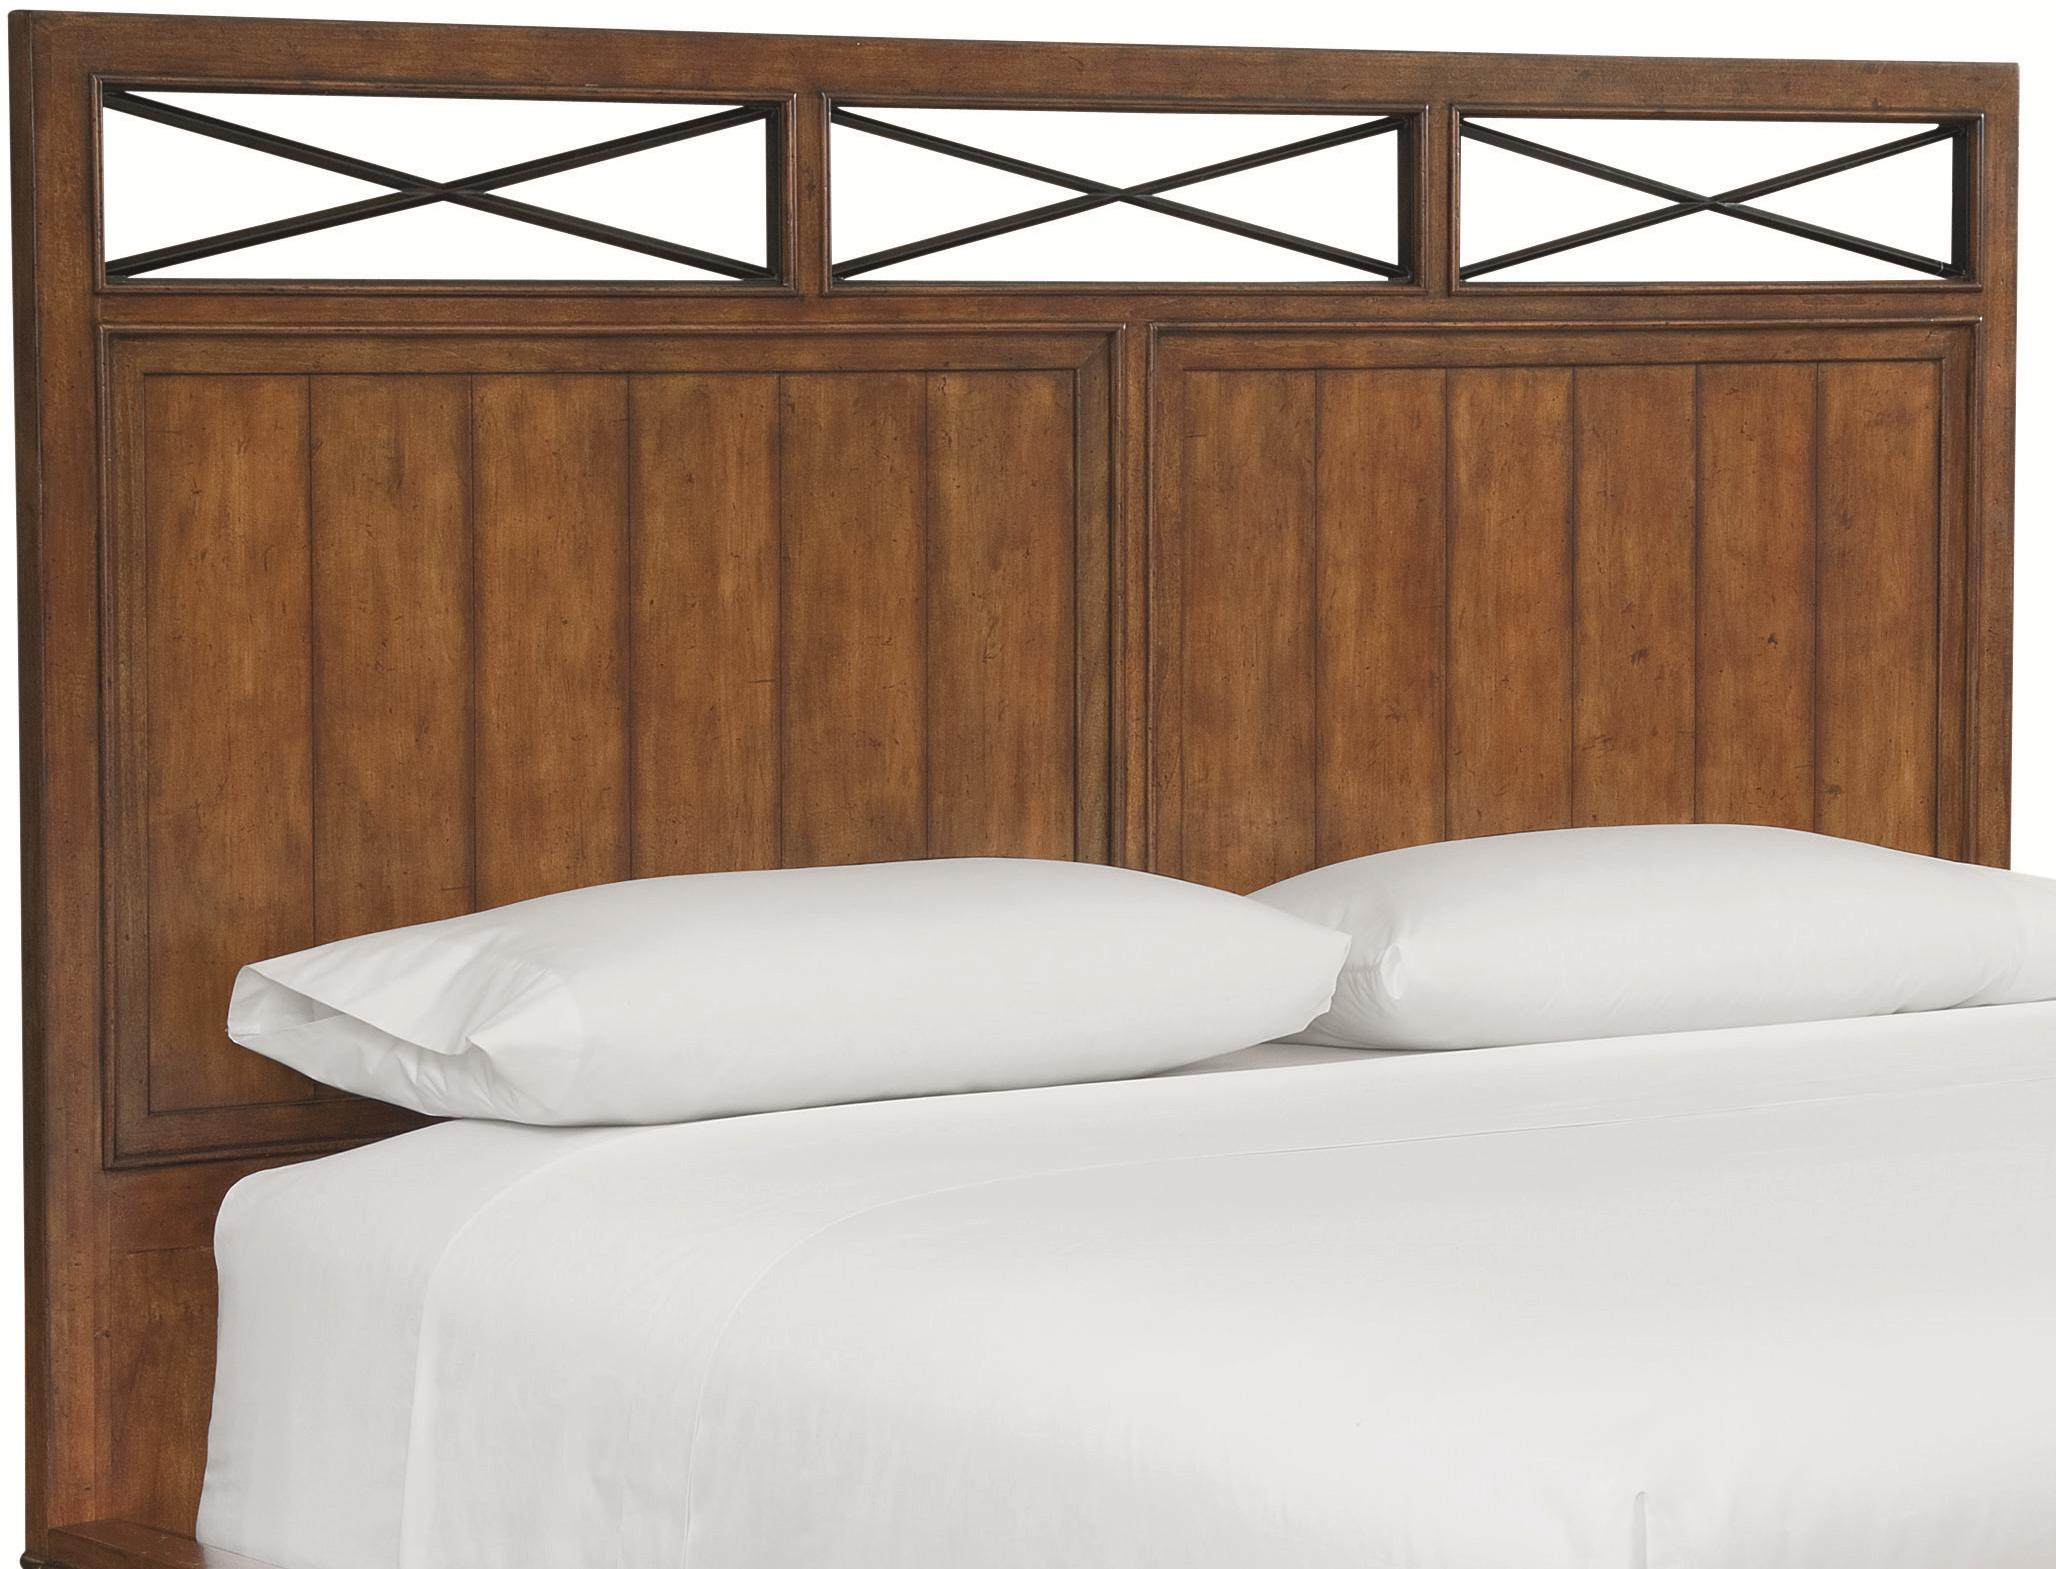 Thomasville® American Anthem Queen Panel Headboard - Item Number: 82811-435